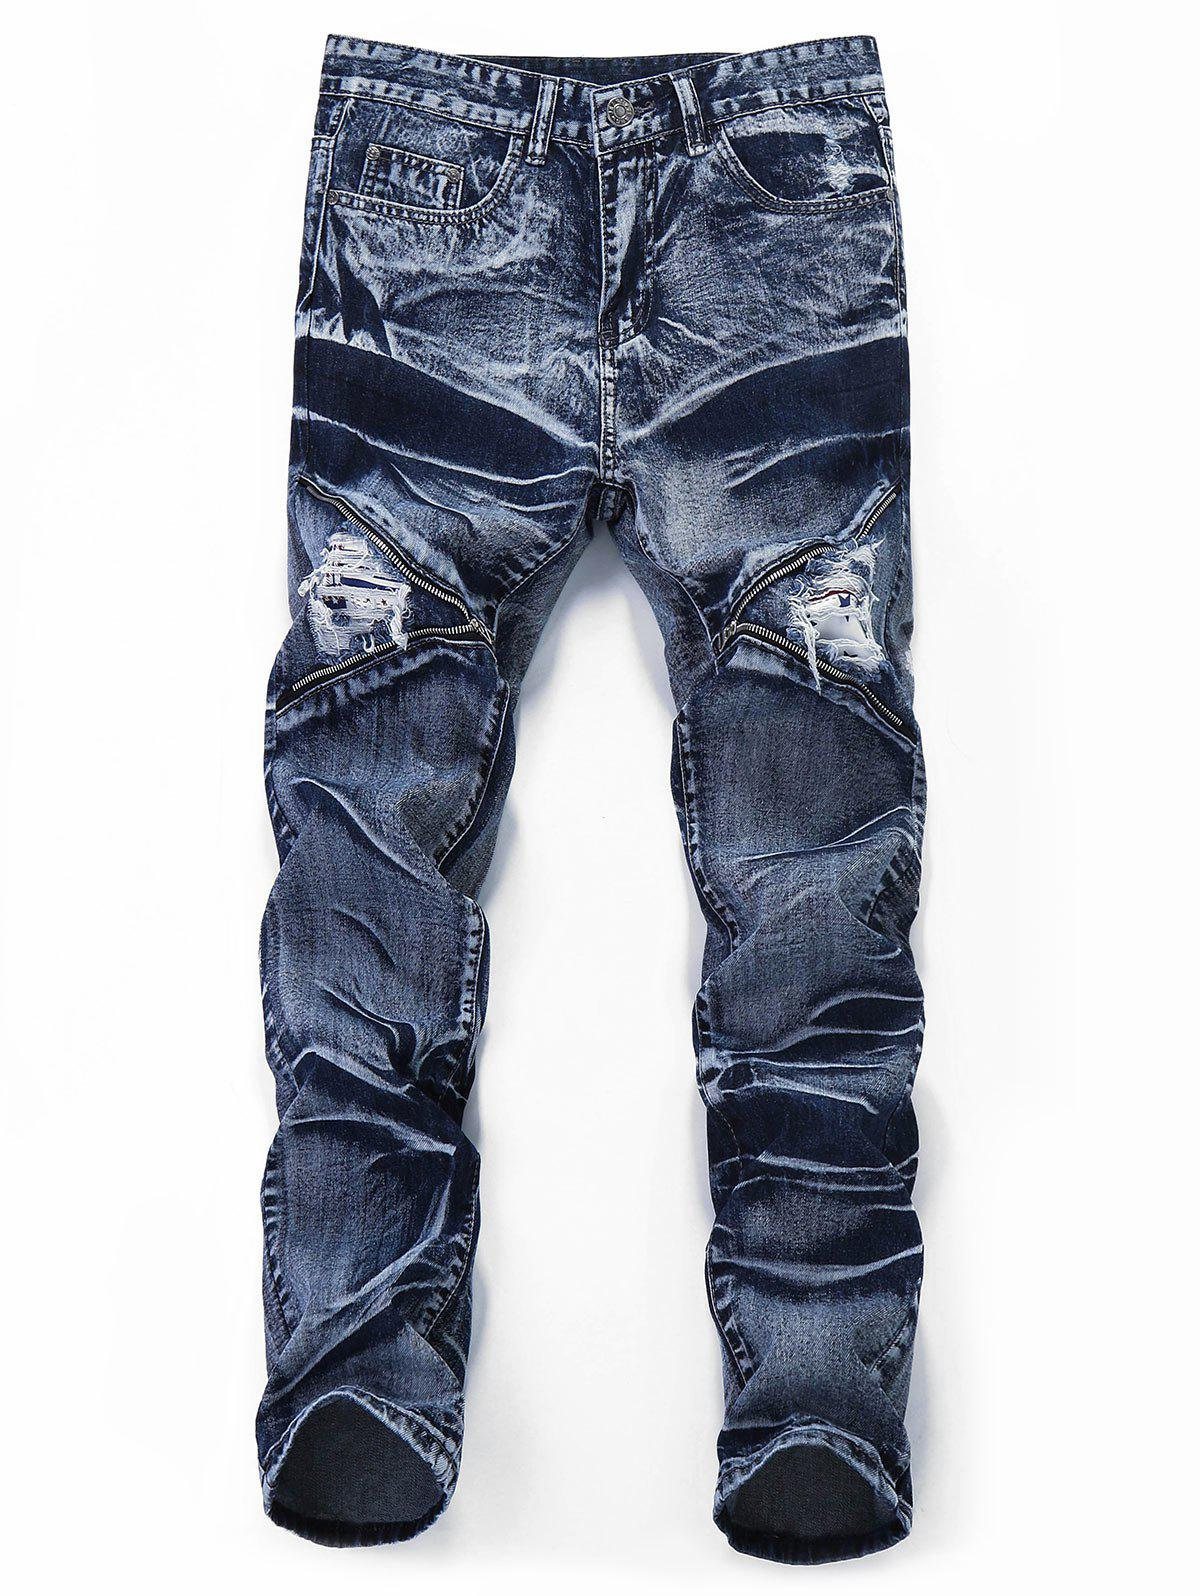 Affordable Distressed Zipper Leg Pockets Jeans